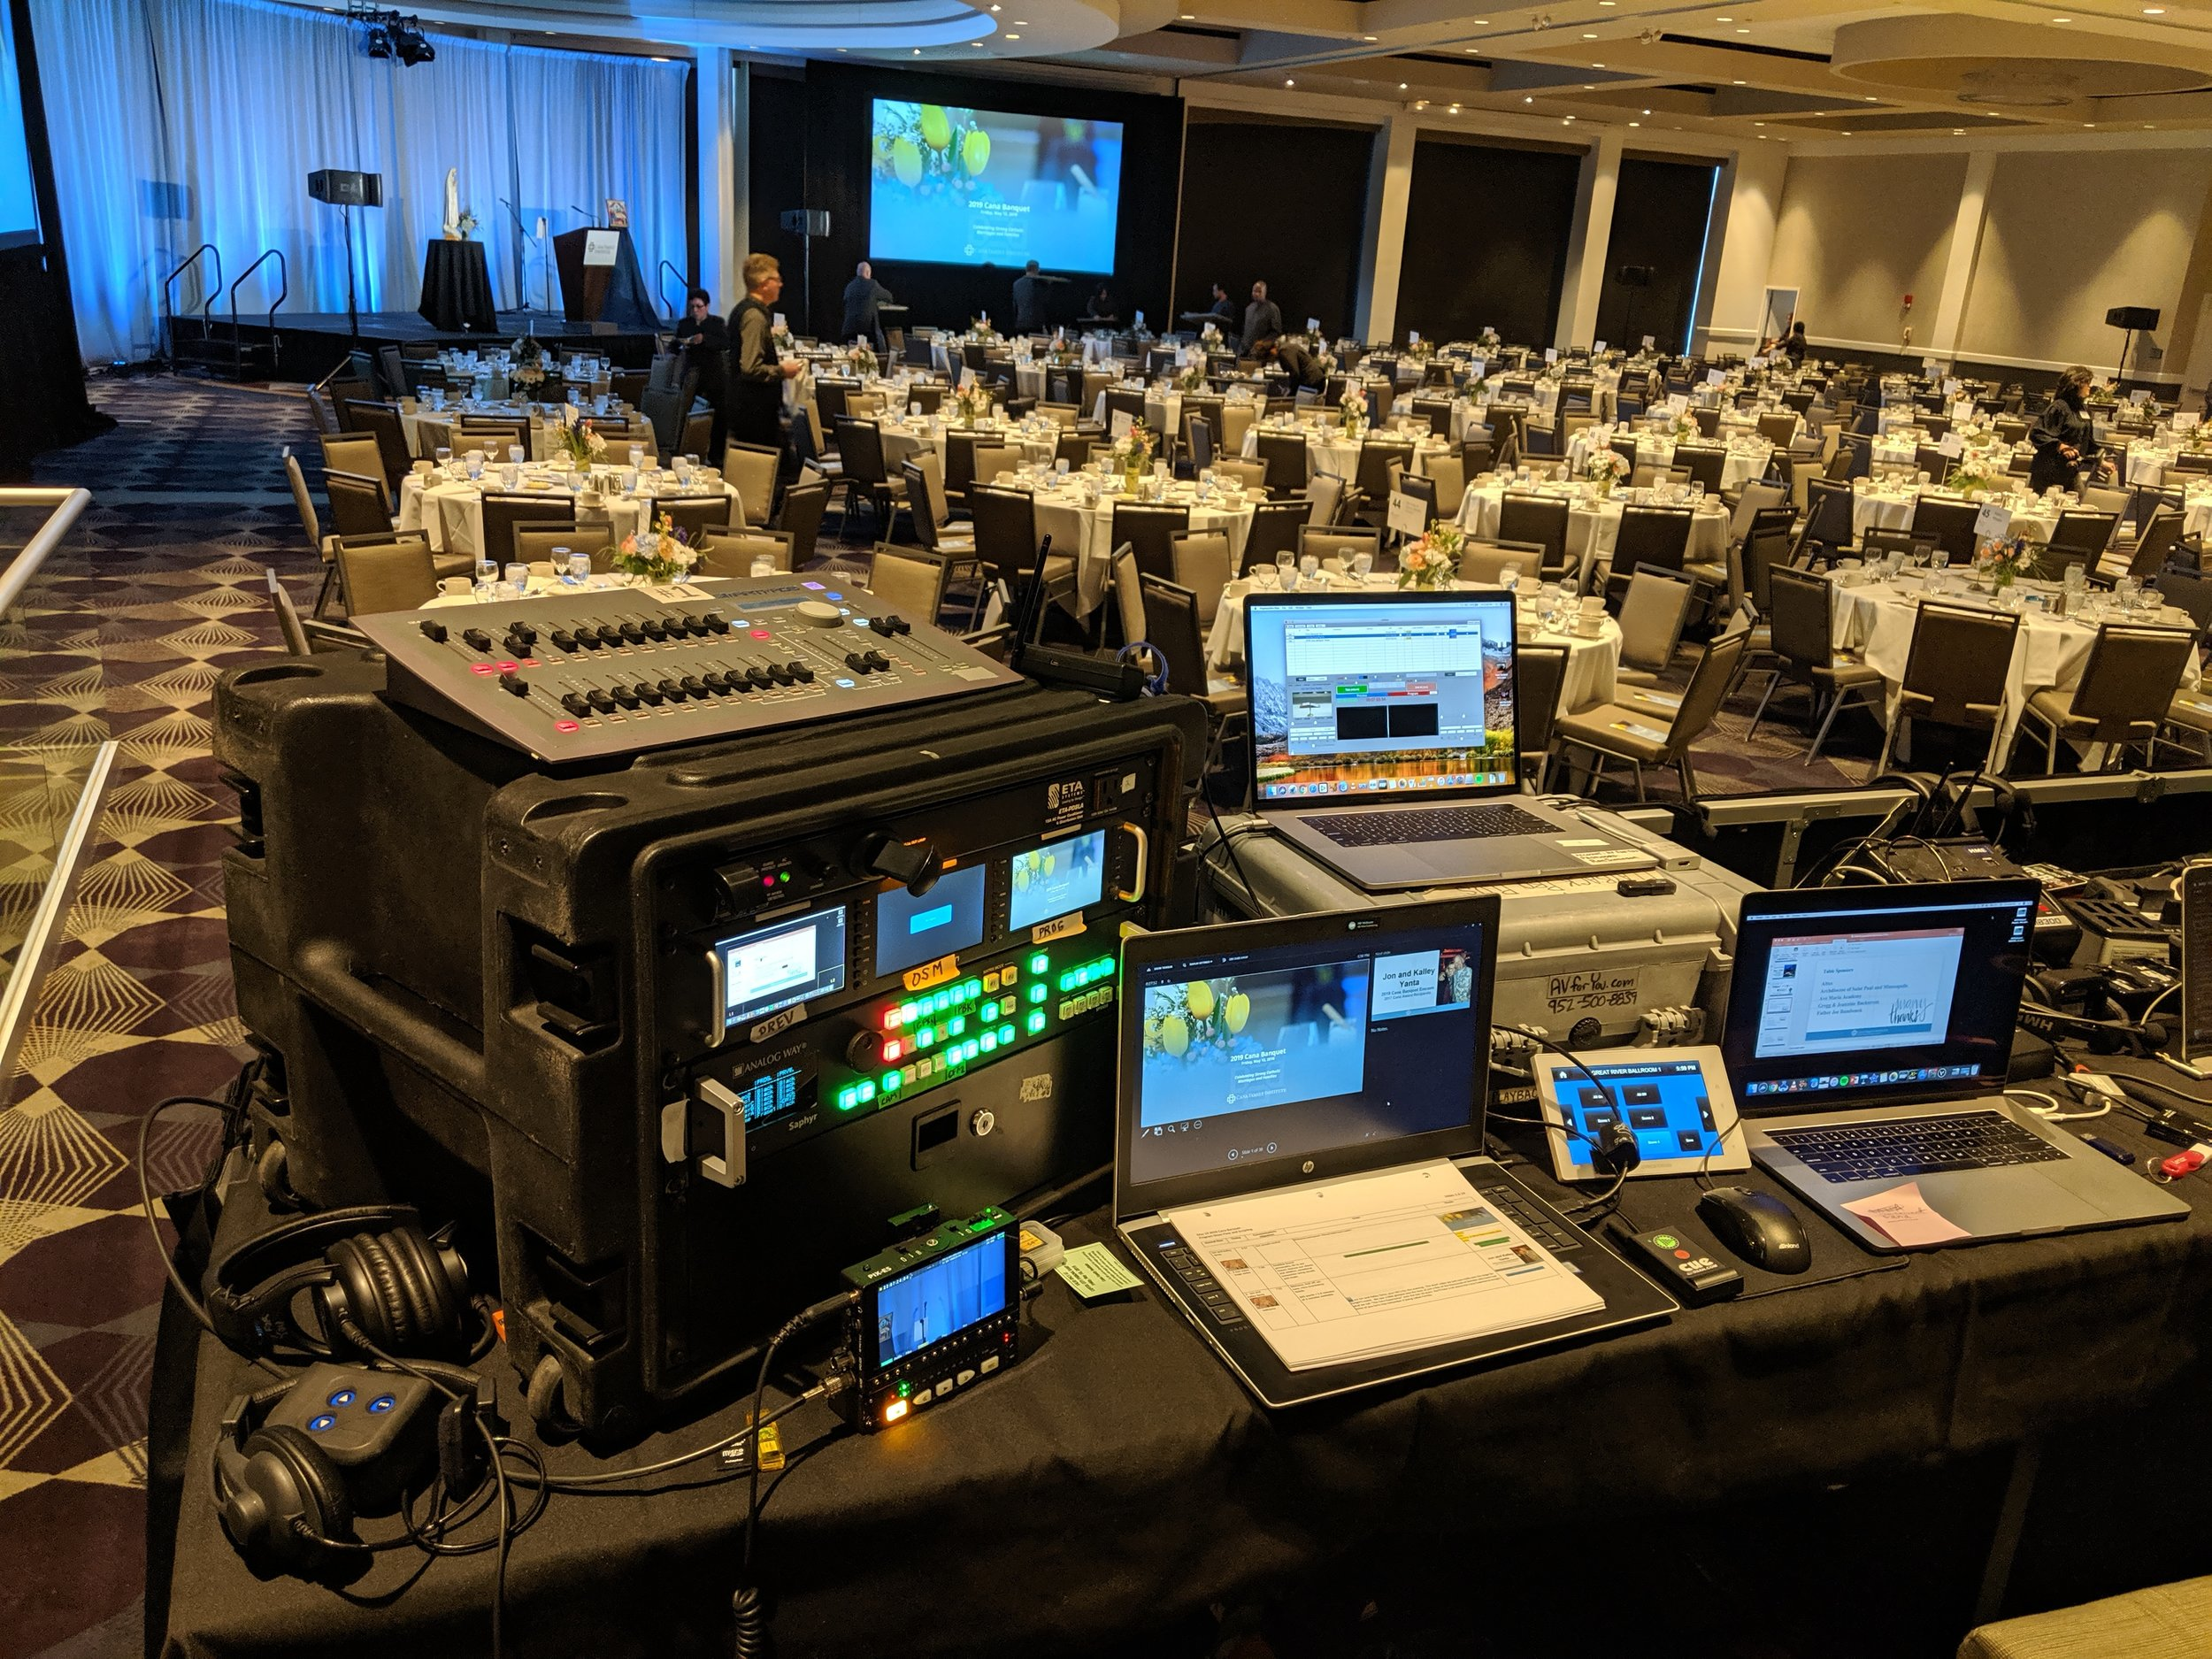 Picture of AV for You Rental Equipment at the Intercontinental Hotel in St Paul